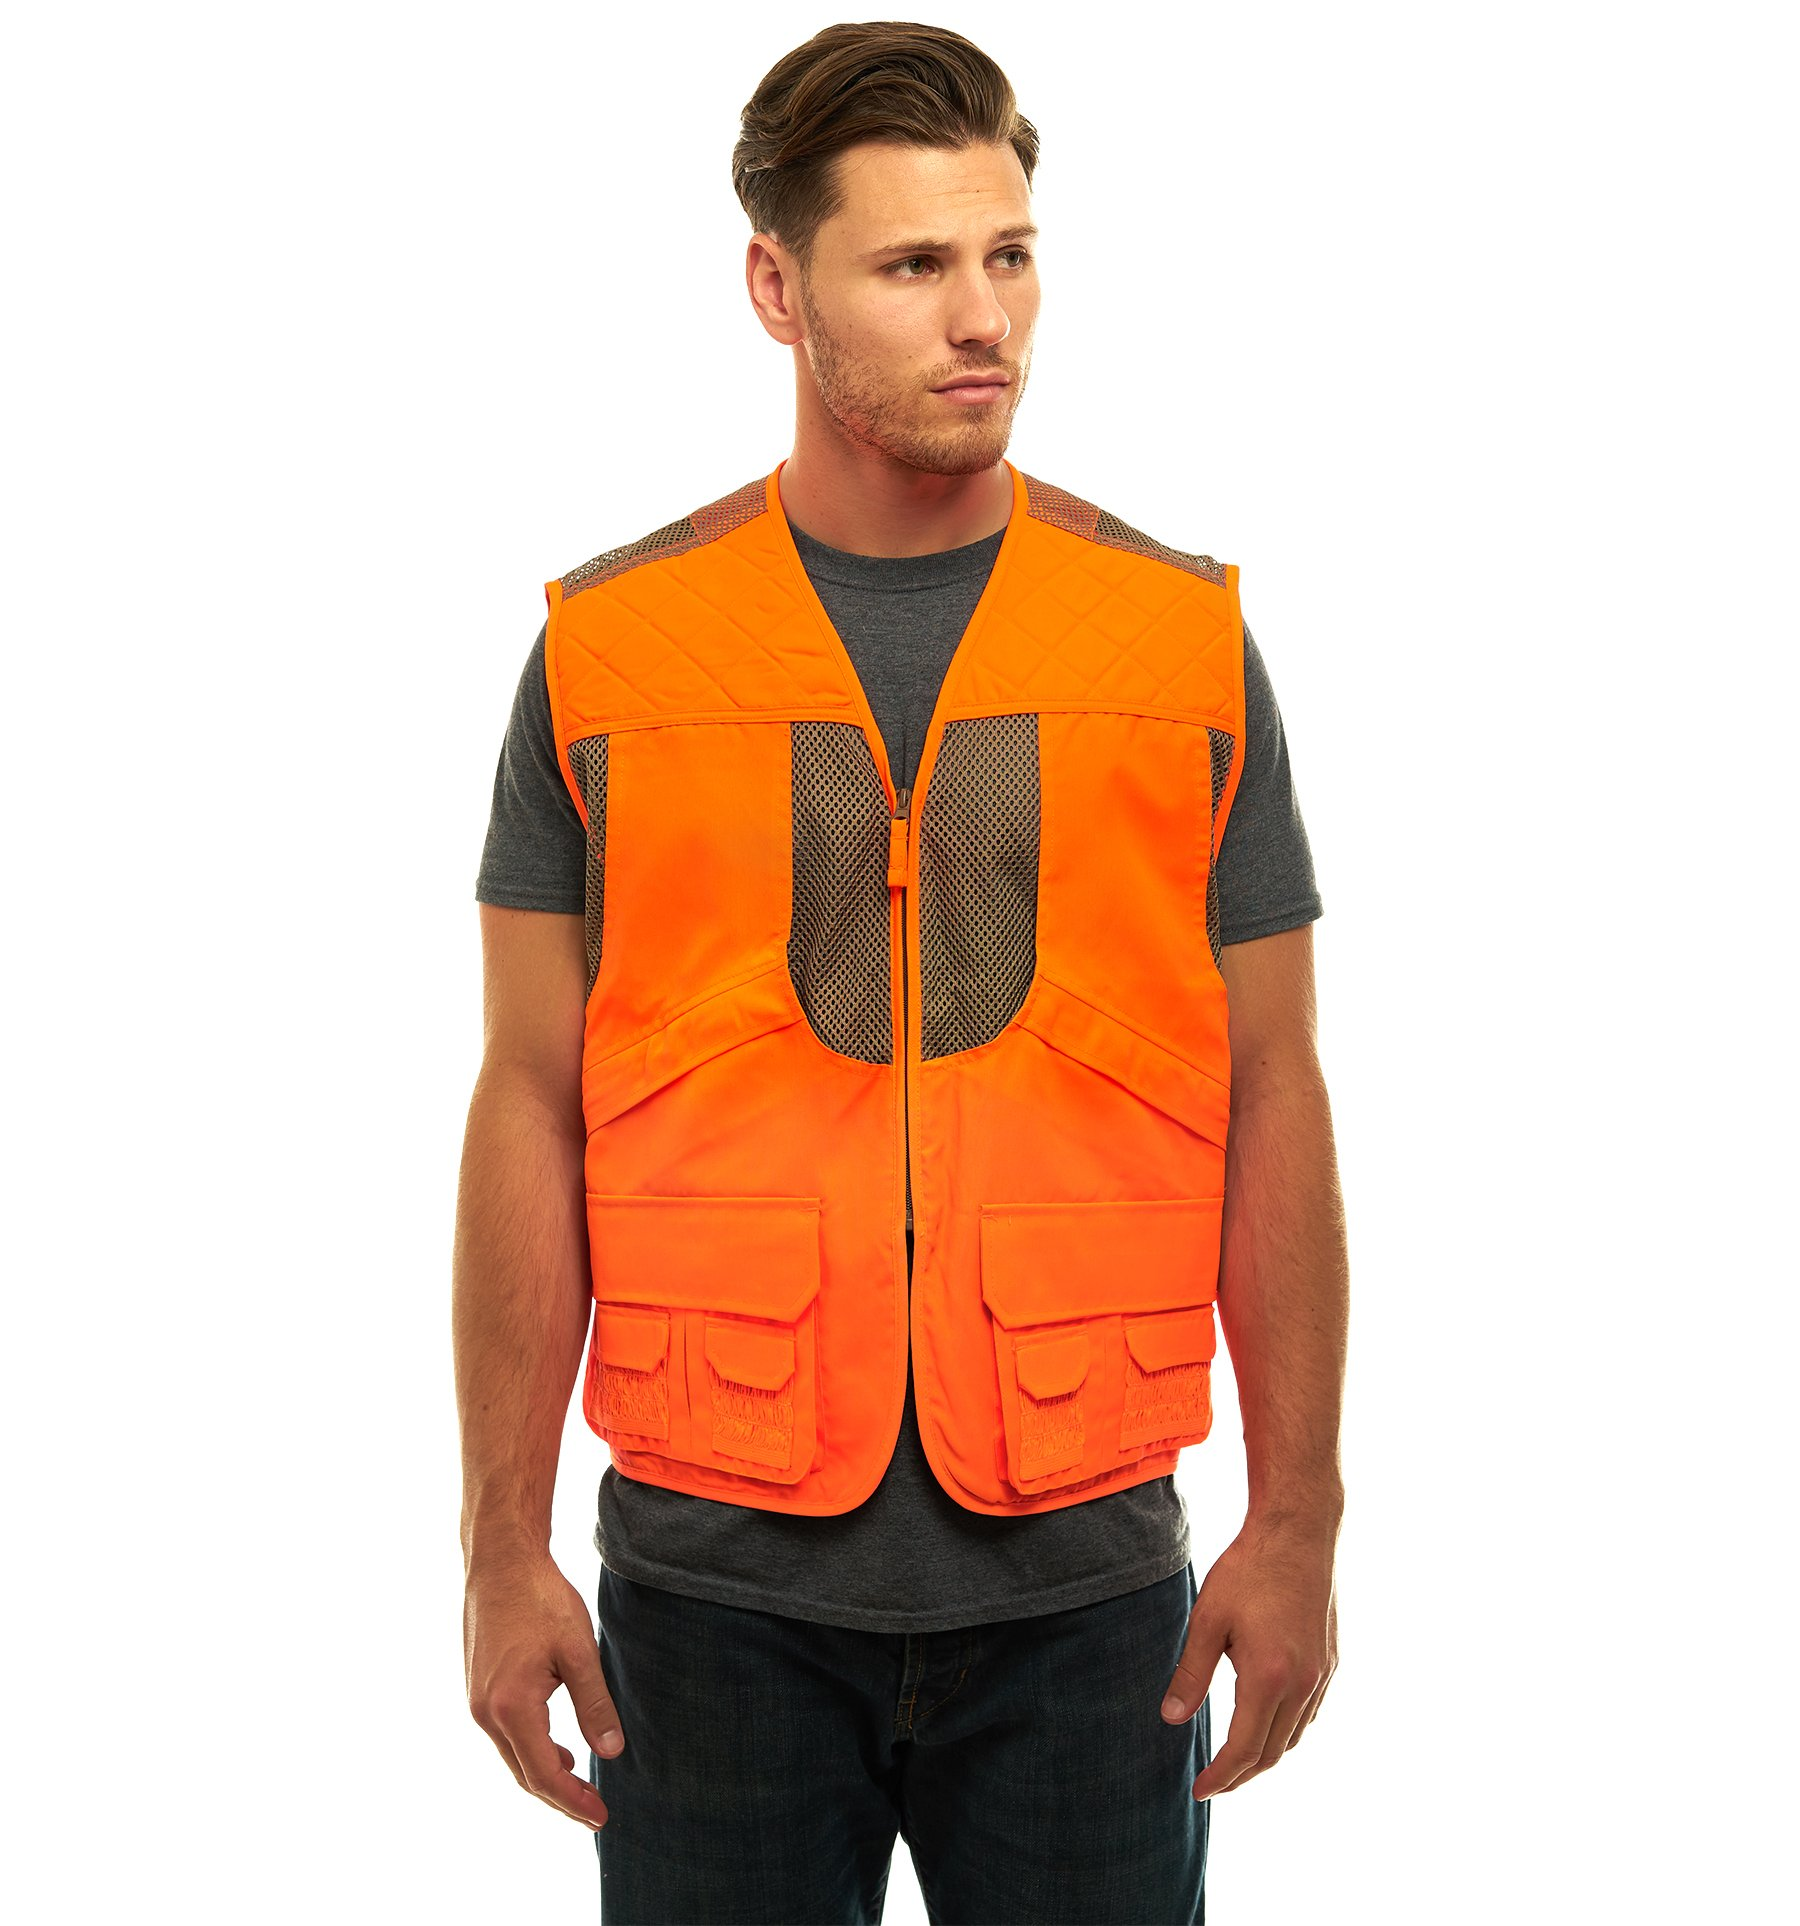 TrailCrest Mens Blaze Orange Safety Deluxe Front Loader Vest, 3X by TrailCrest (Image #1)